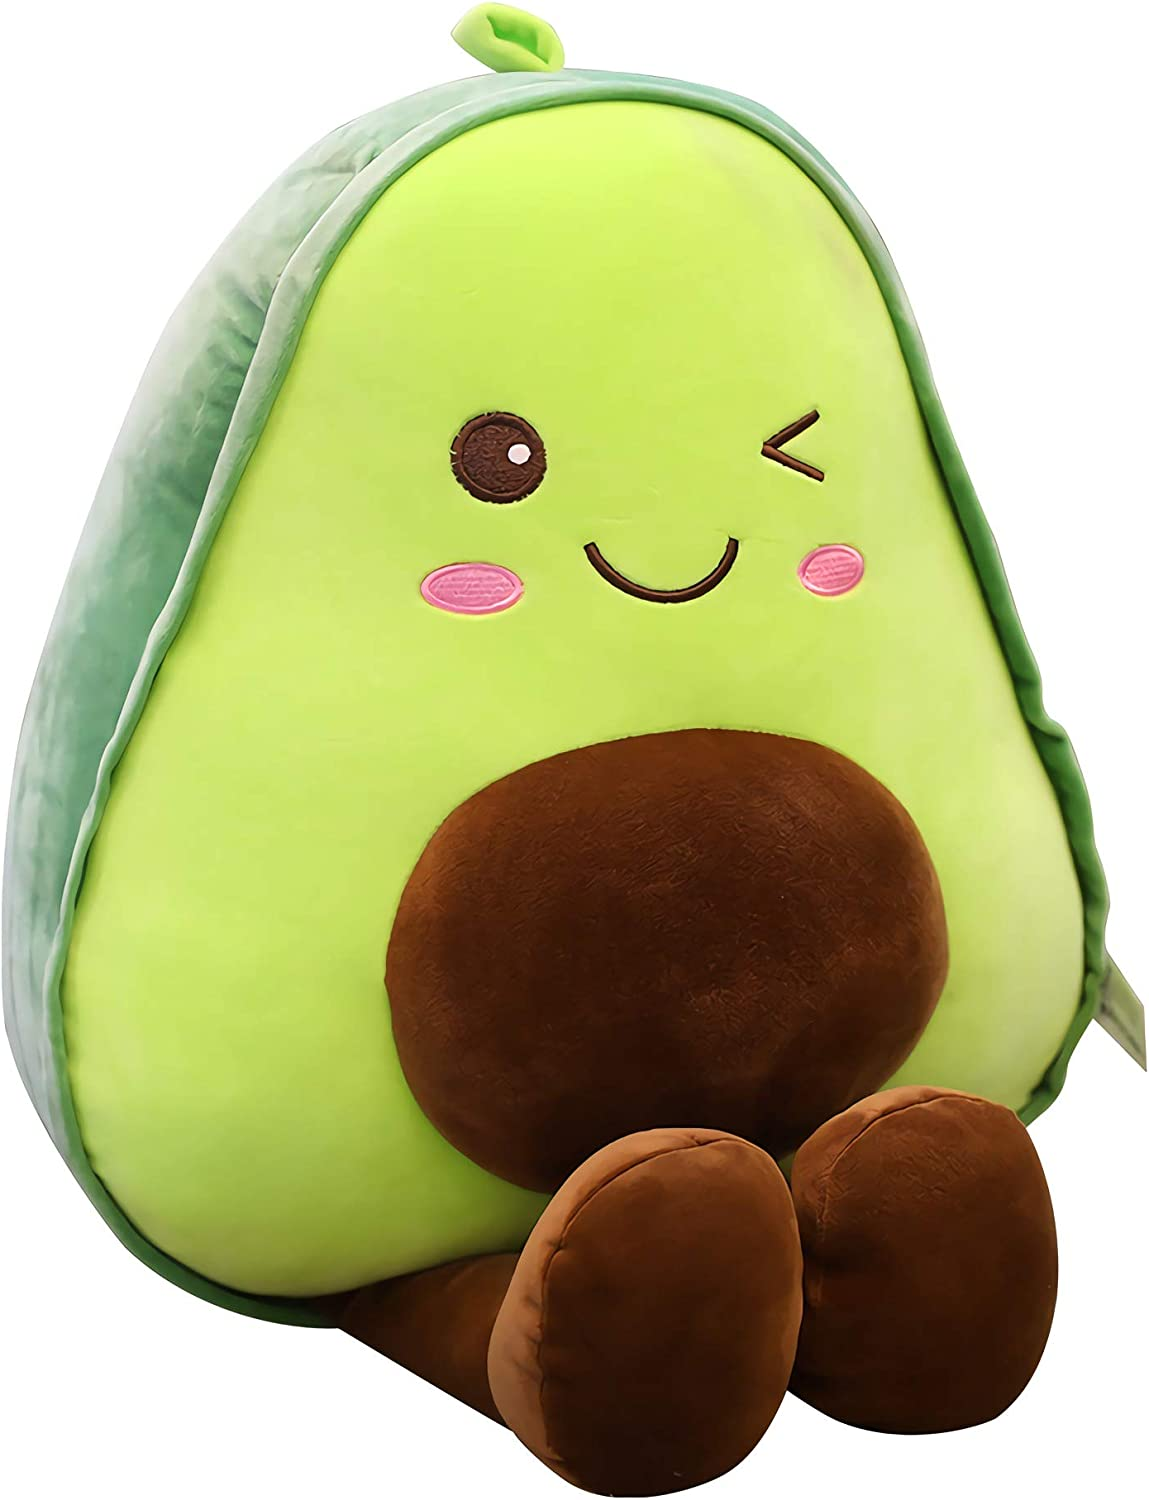 "JackDuck Cute Avocado Plush Toy Stuffed Pillow 11.8"" Best Gift for Kids"